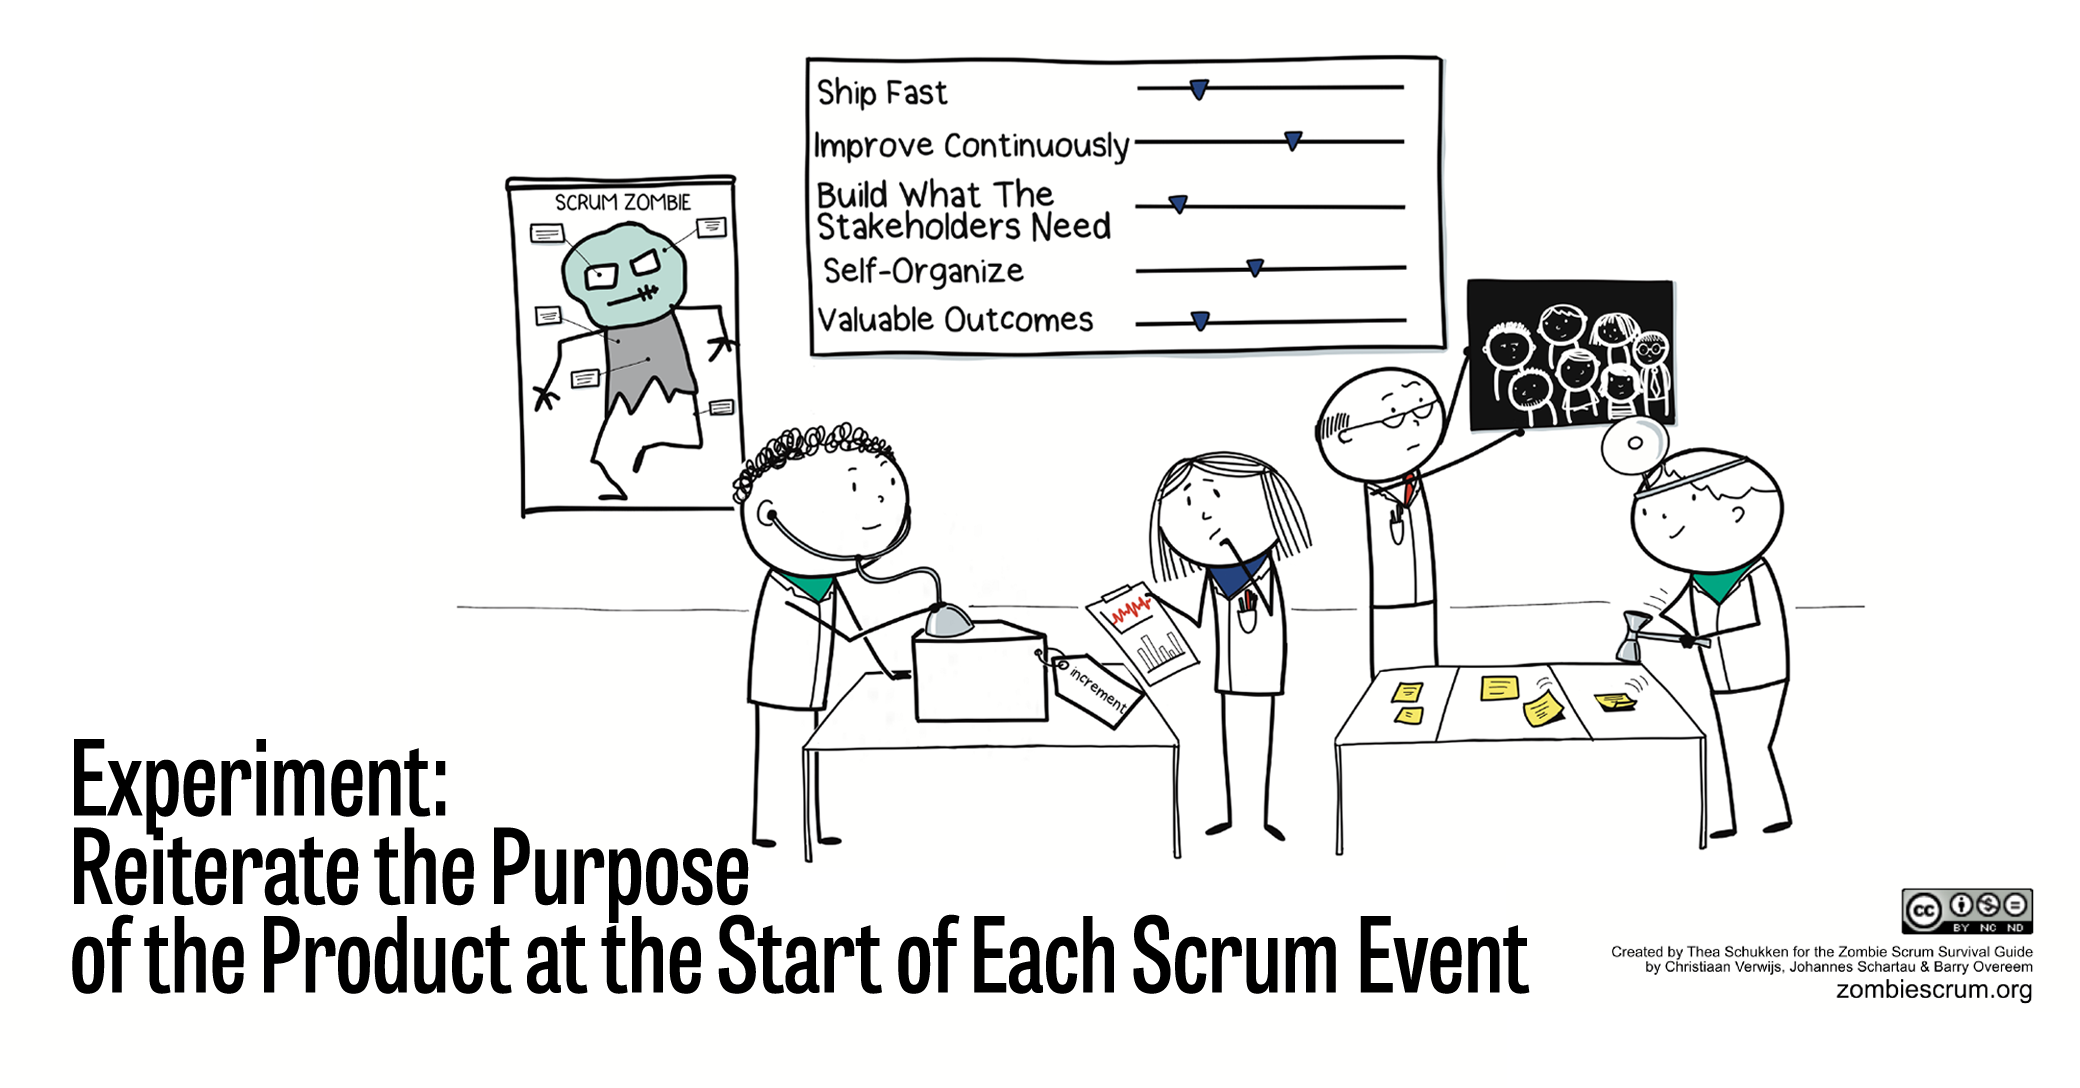 Experiment: Reiterate the Purpose of the Product at the Start of Each Scrum Event